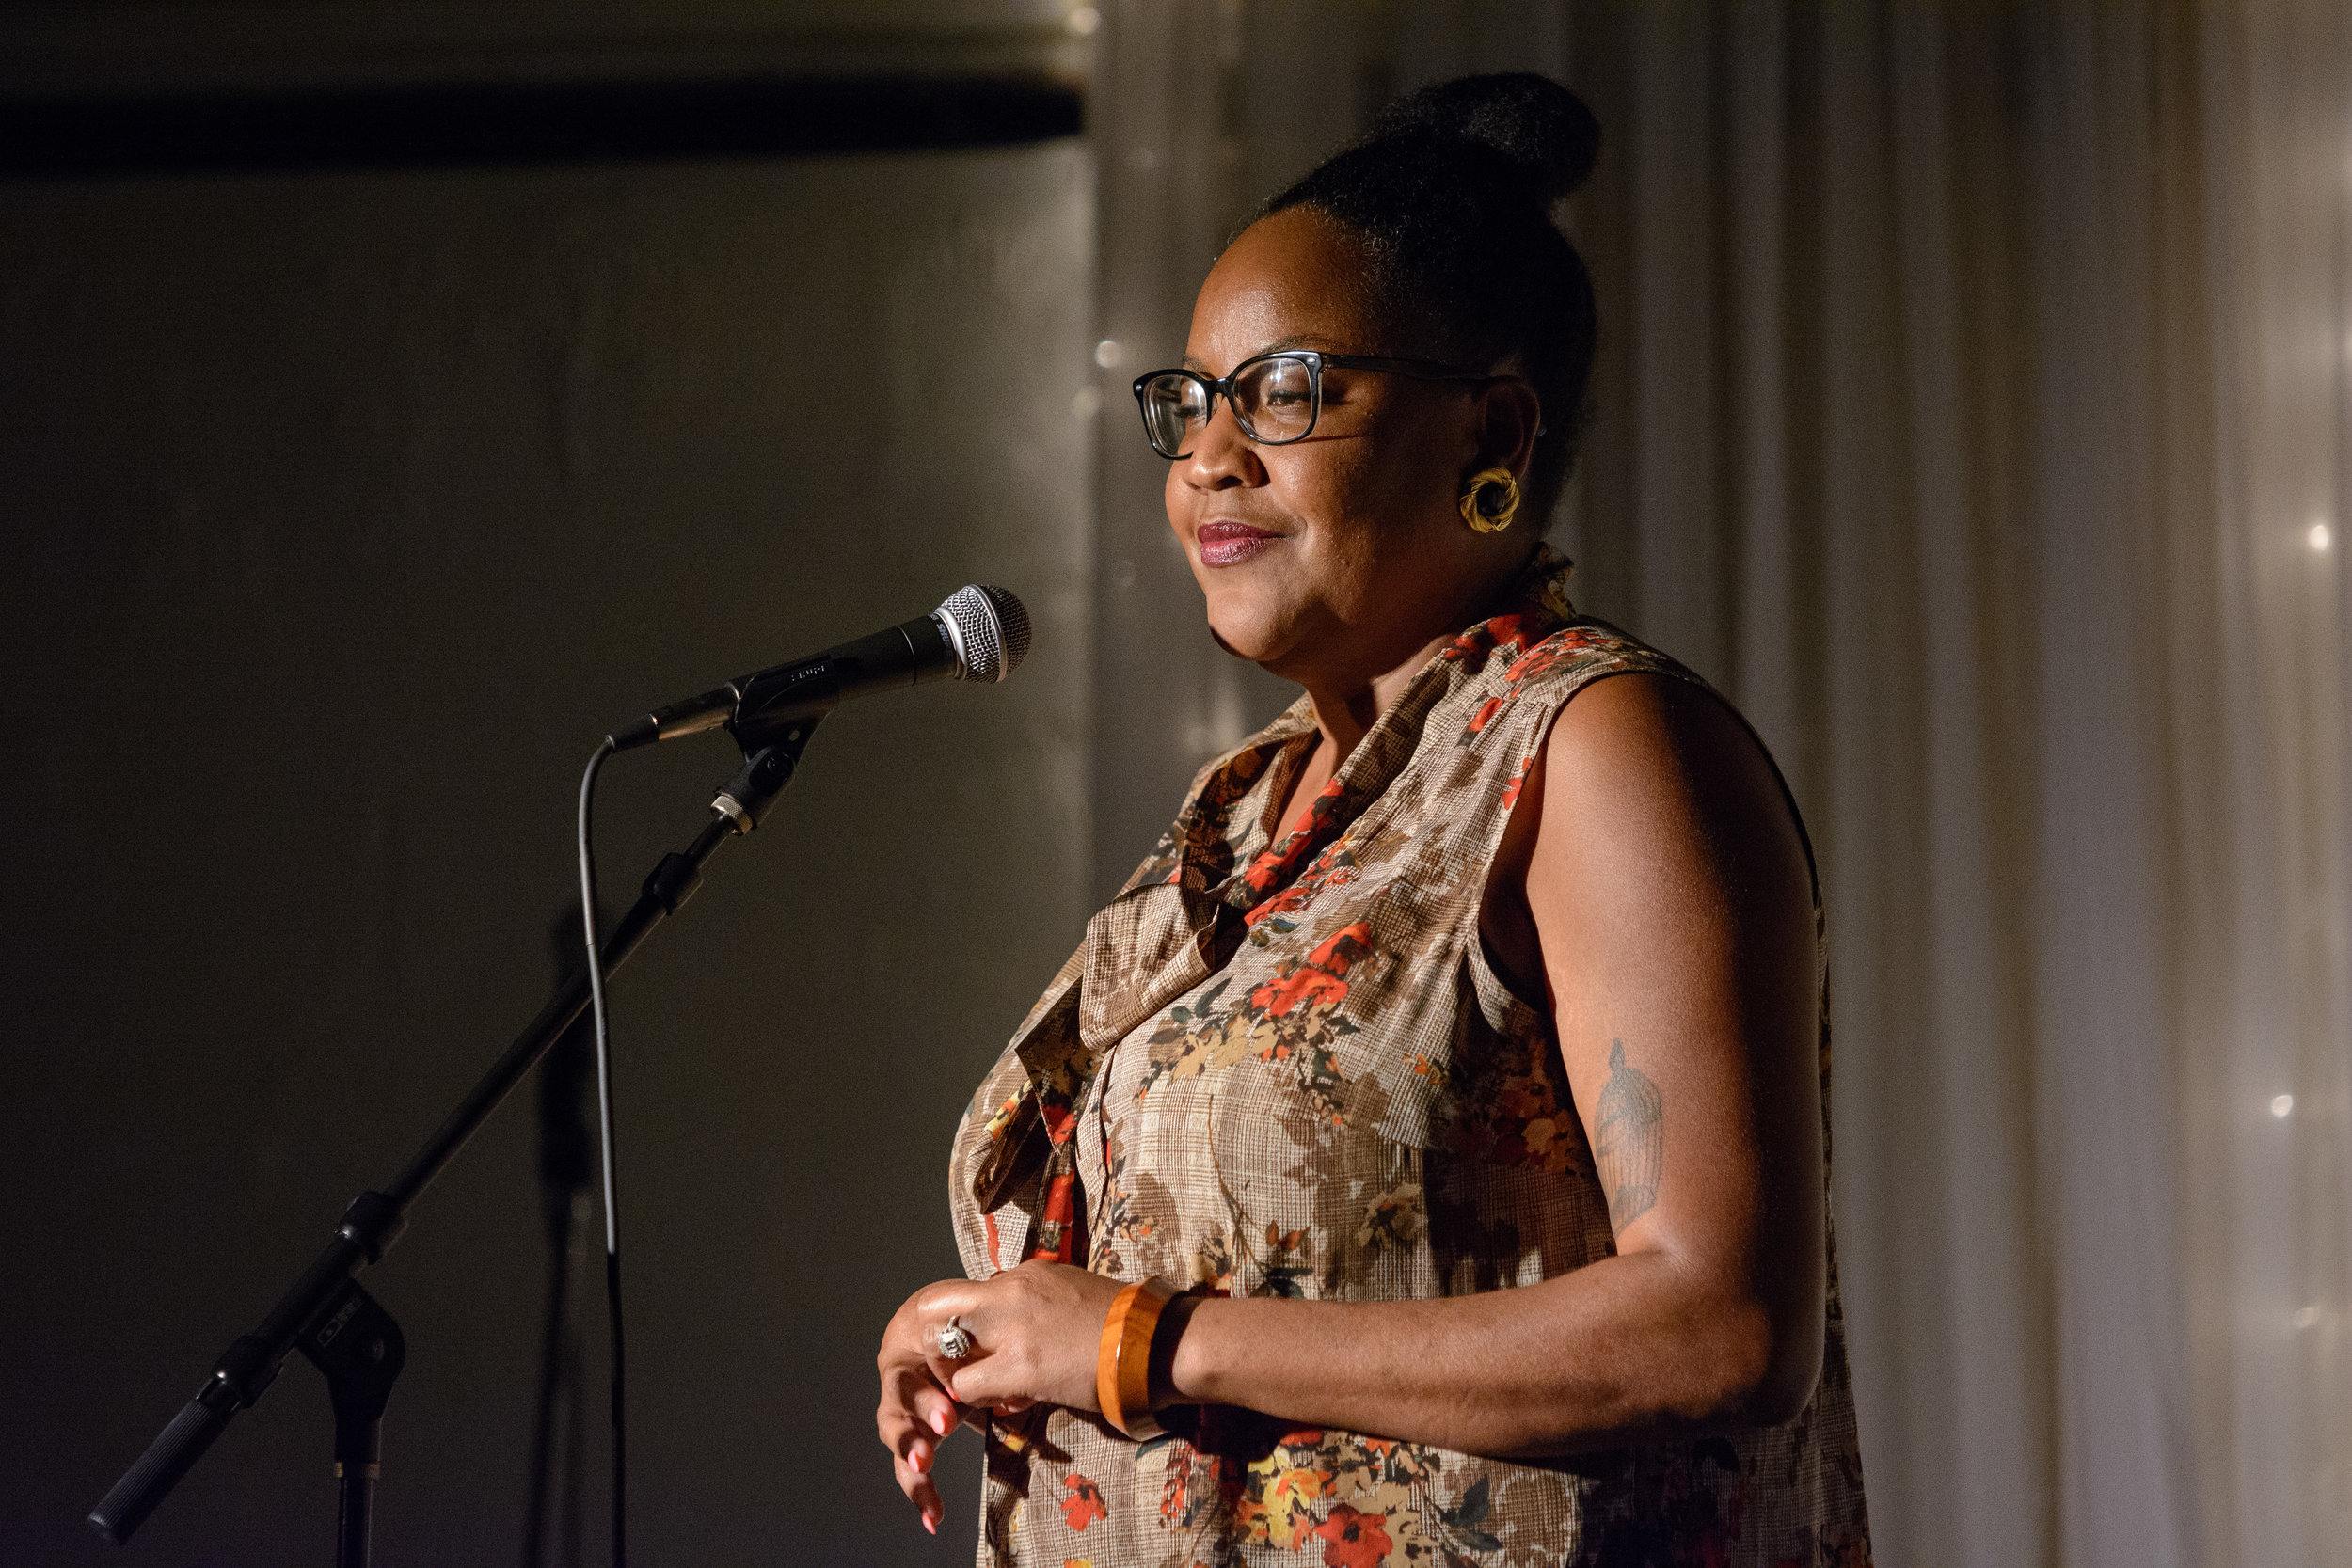 Tricia Hersey shares her story on the Story Collider stage at the Highland Inn and Ballroom in Atlanta, GA in October 2018. Photo by Rob Felt.